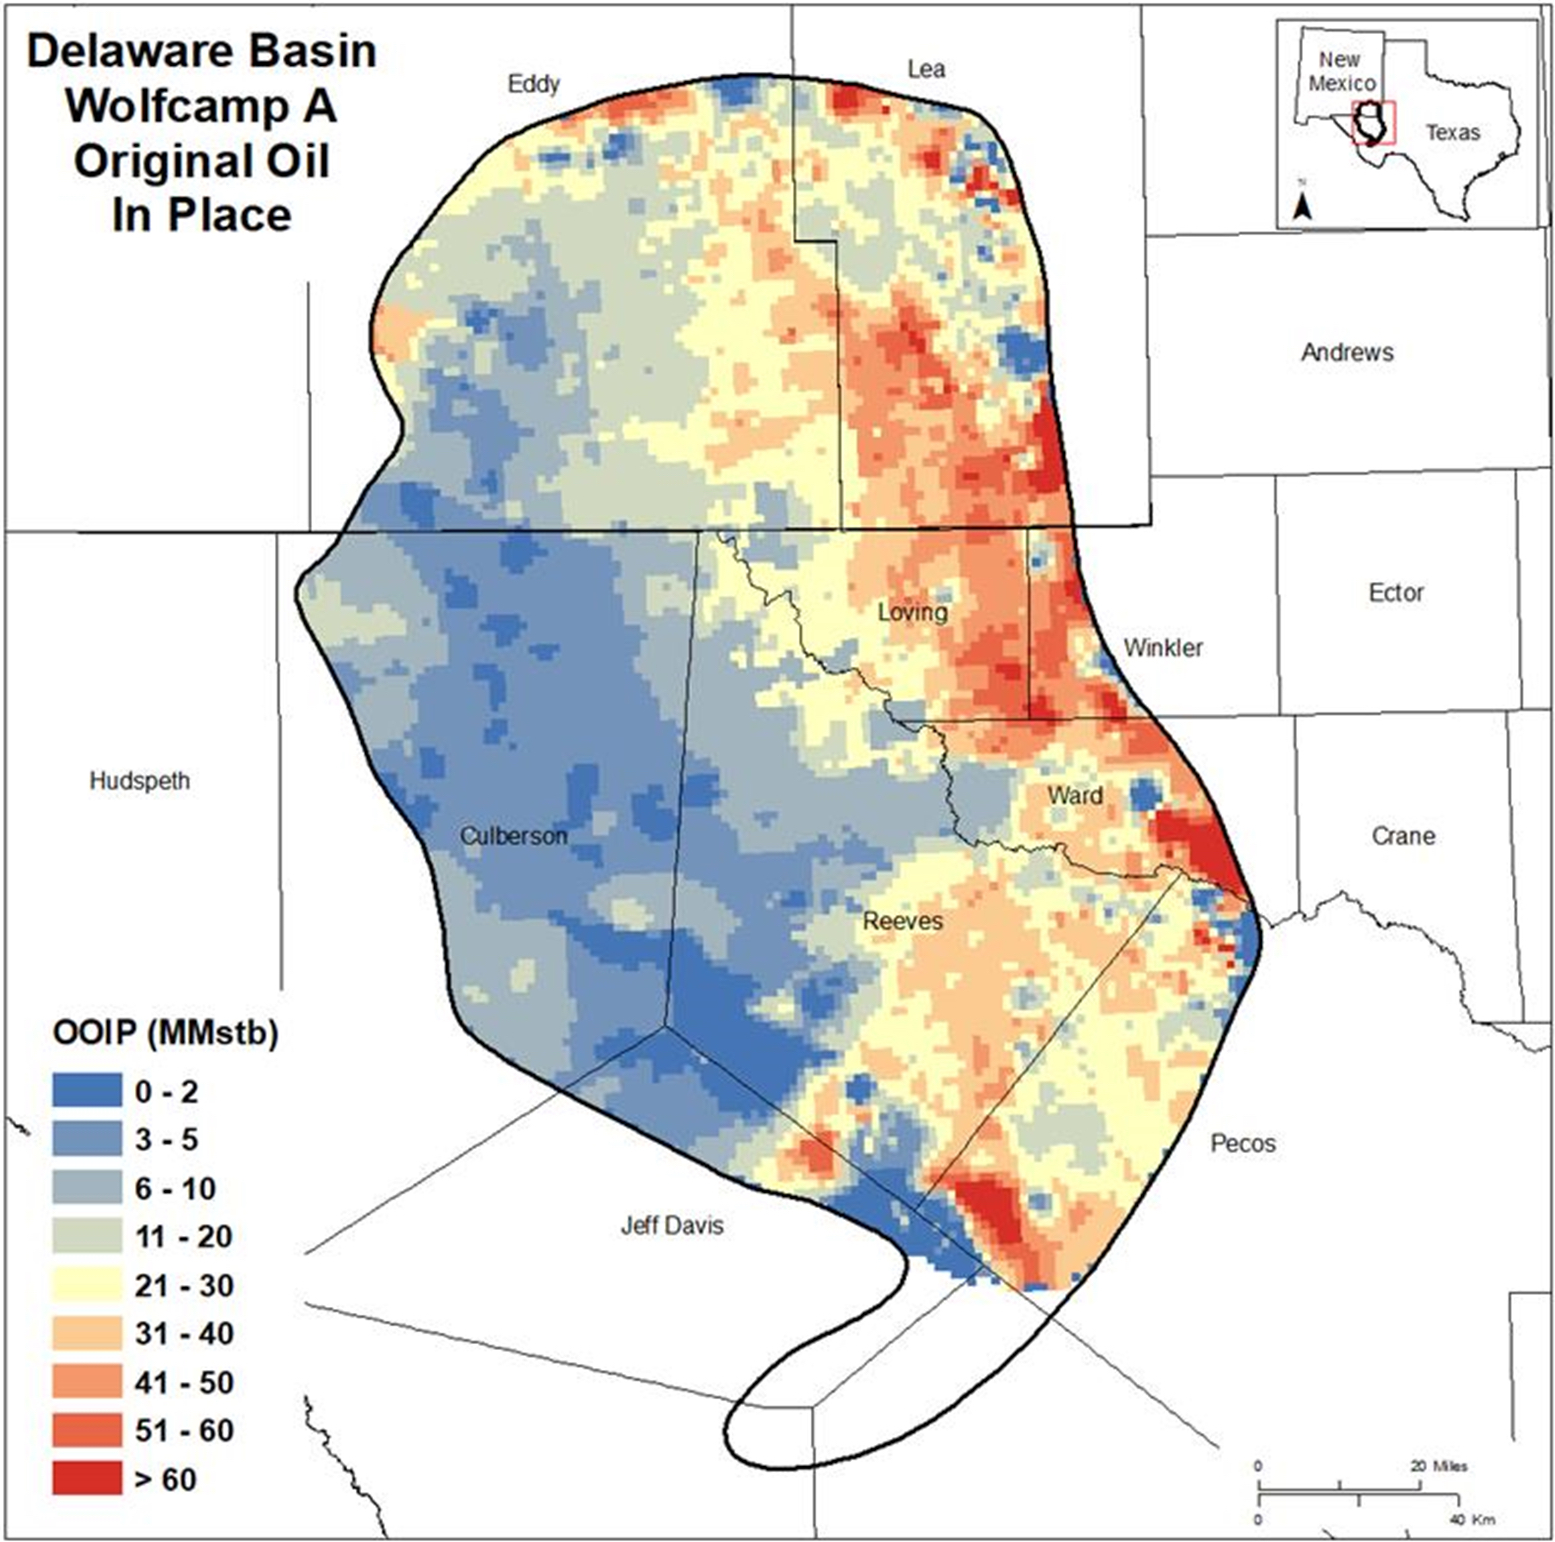 Delaware Basin Wolfcamp A Original Oil In Place